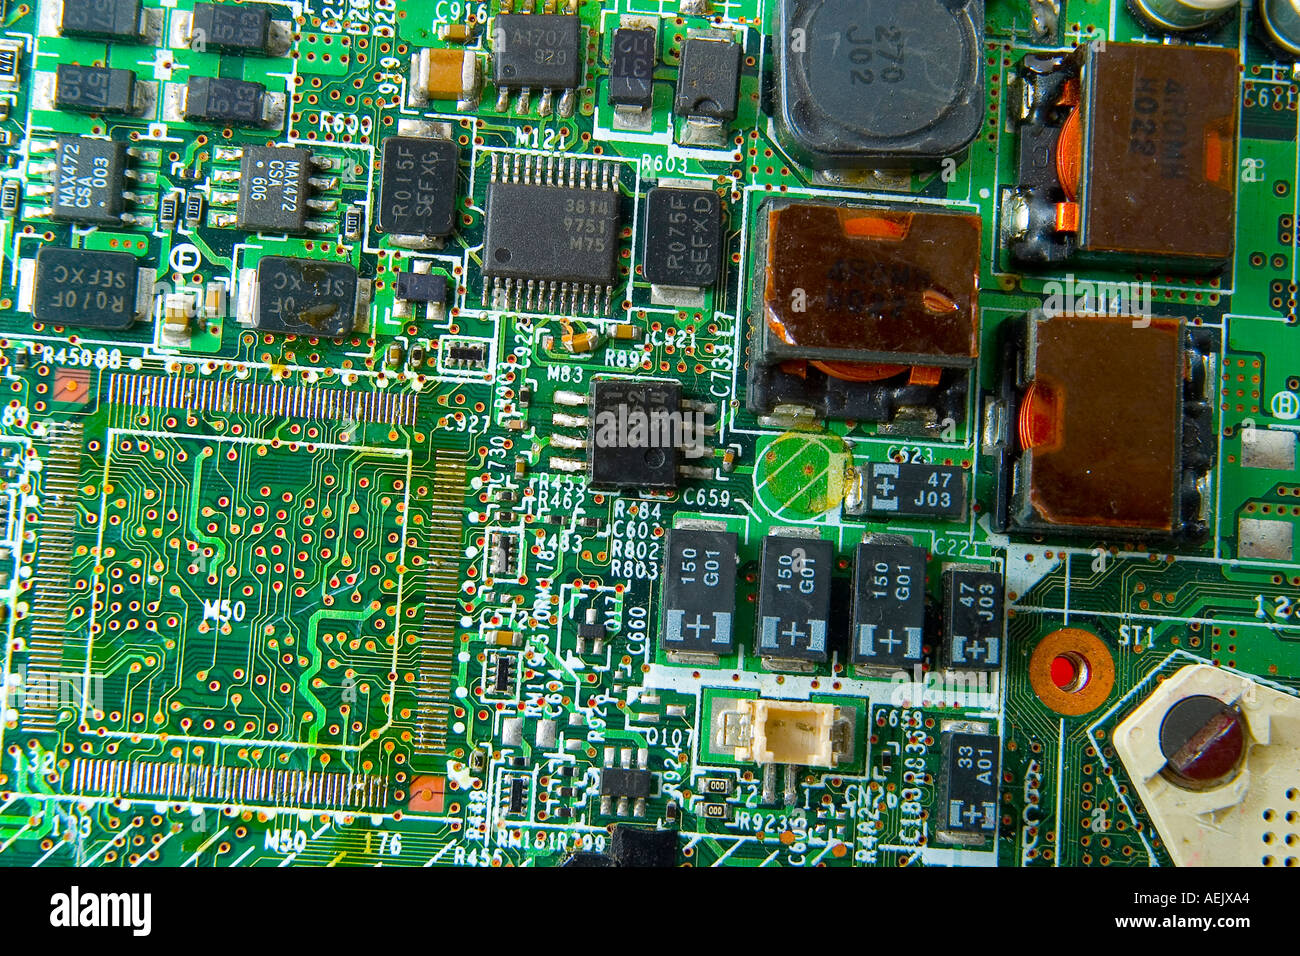 Silicon Chip Computer Board Stock Photo 4473507 Alamy Circuit